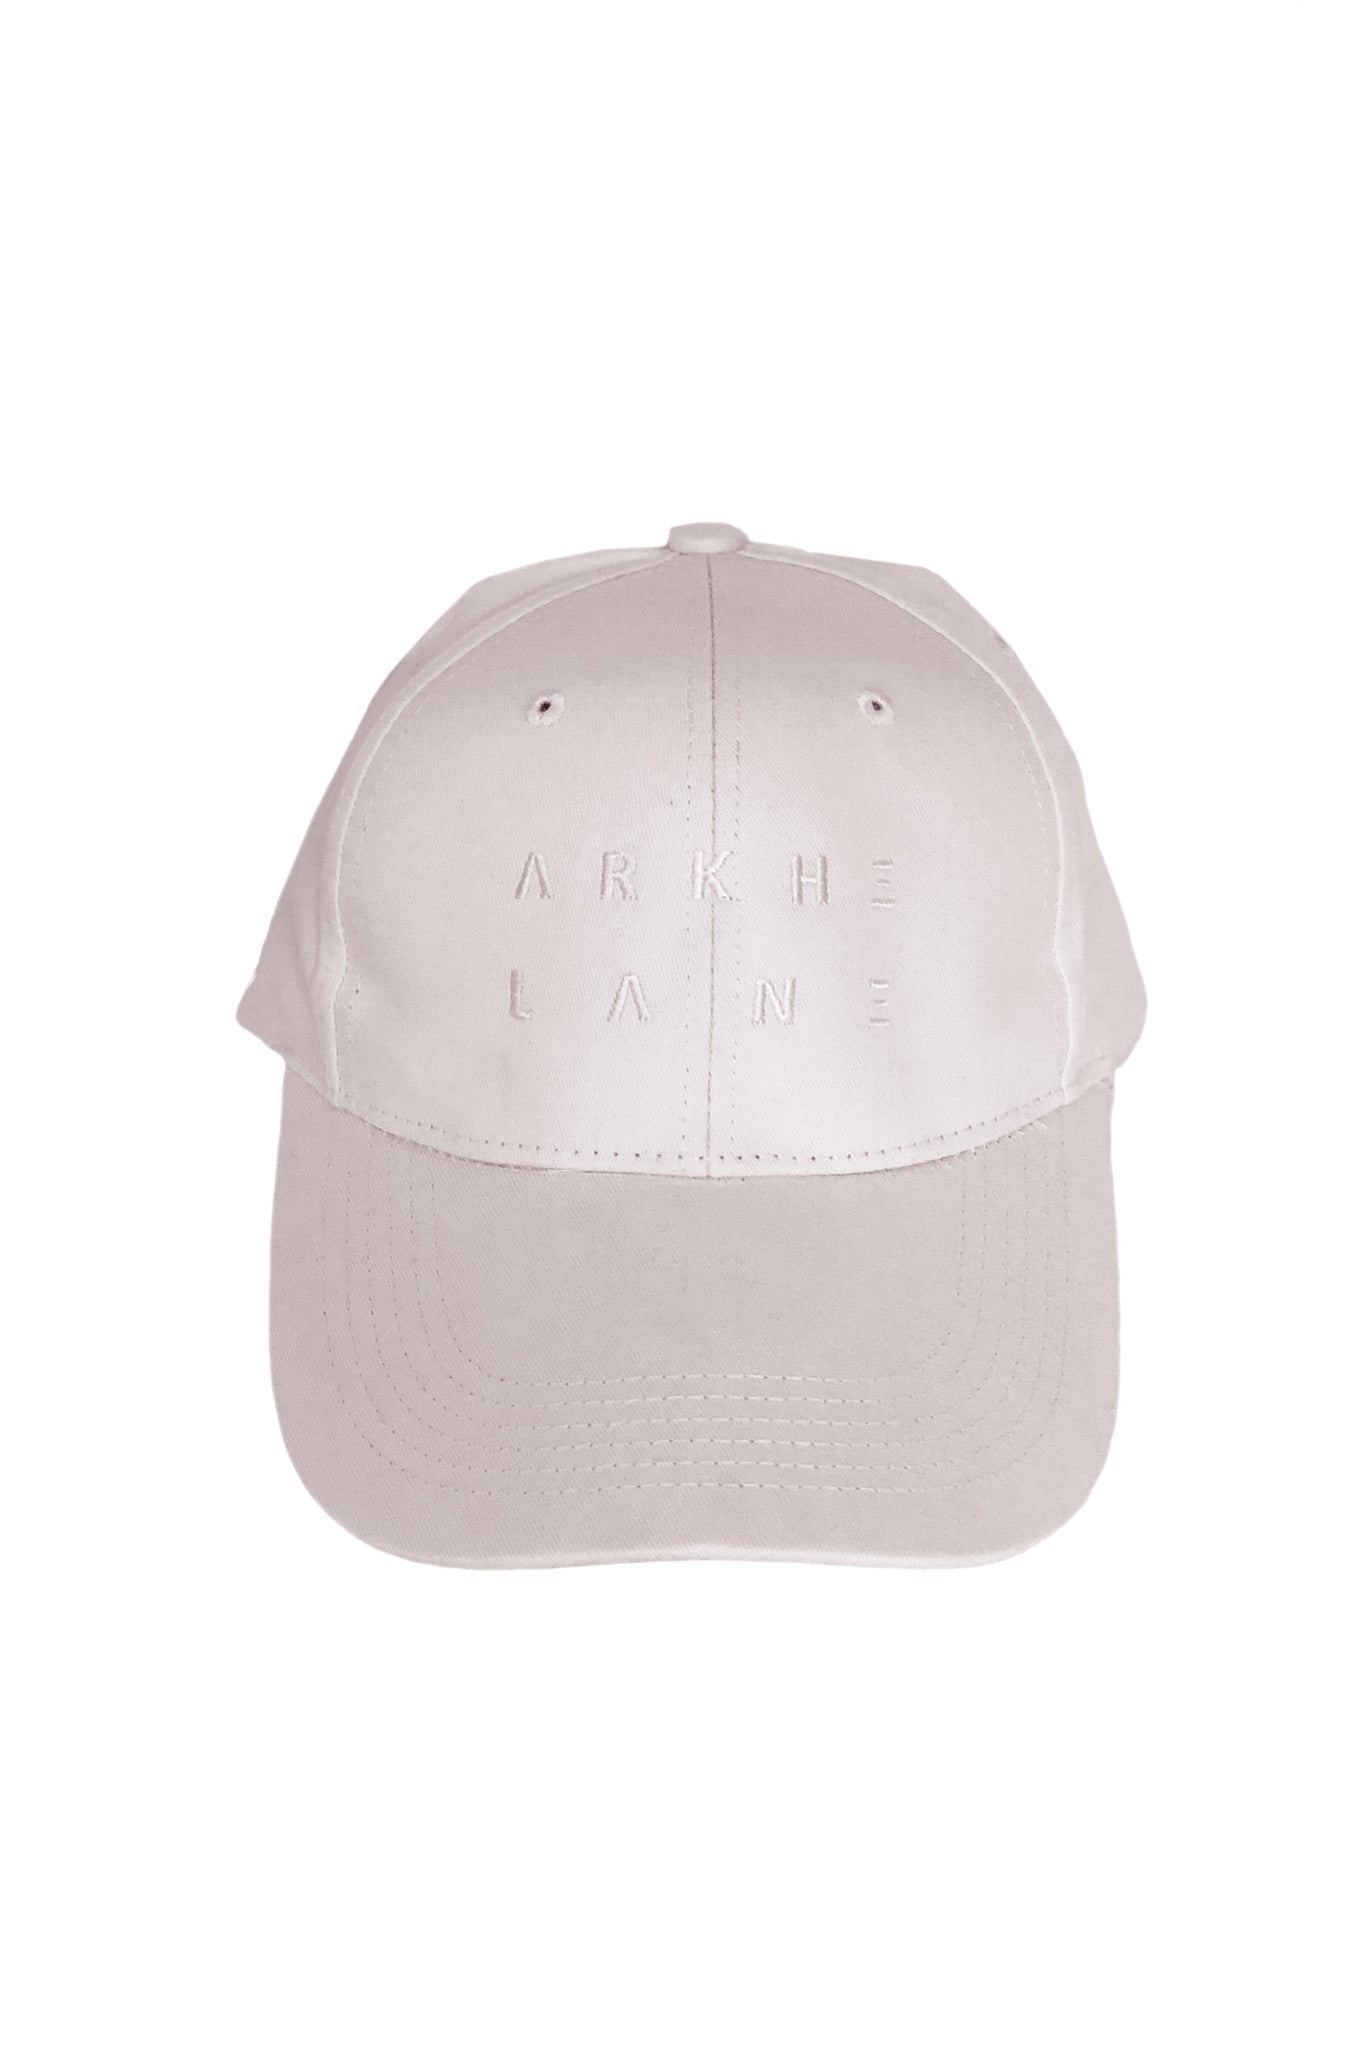 ONE CAP WHITE